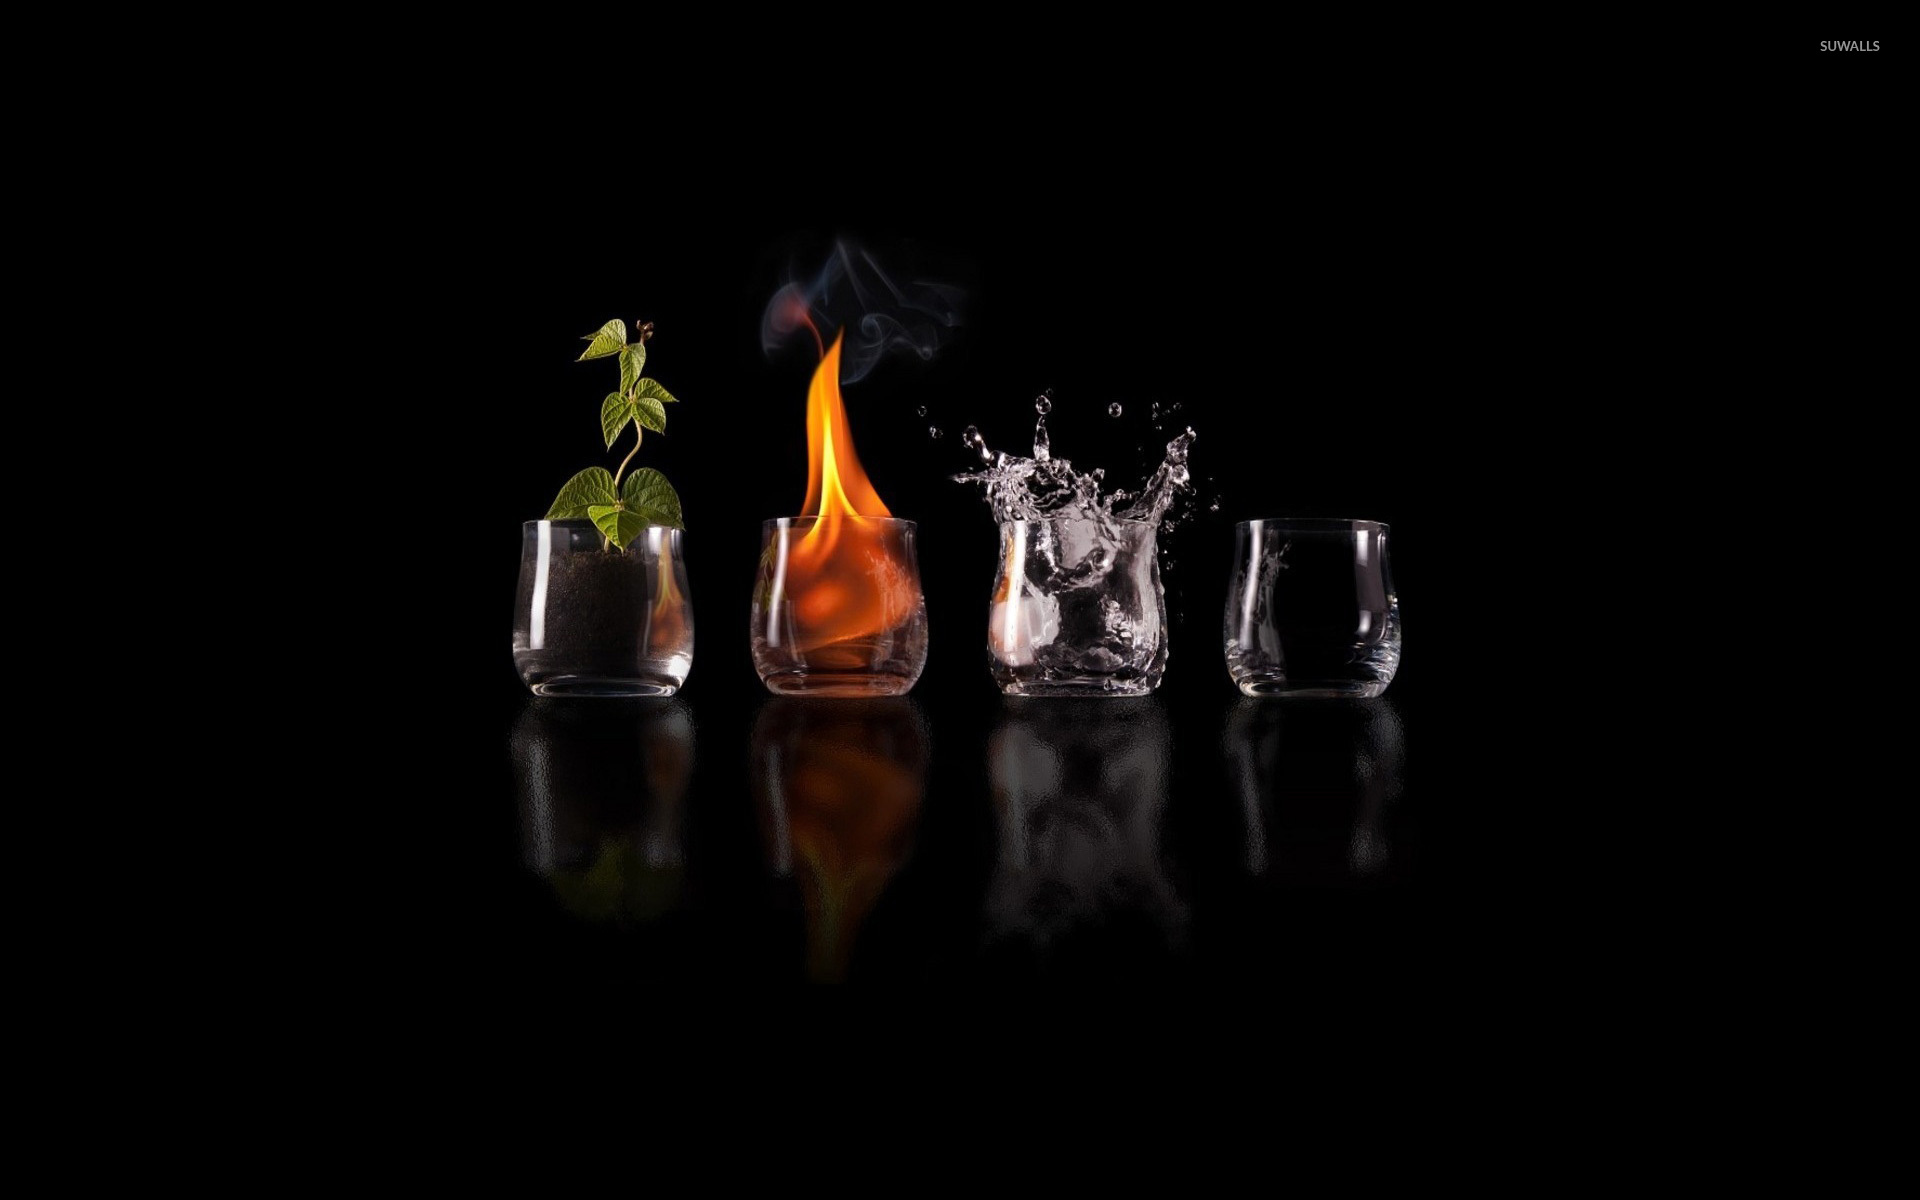 Earth Fire Water And Air Wallpaper Digital Art Wallpapers 5138